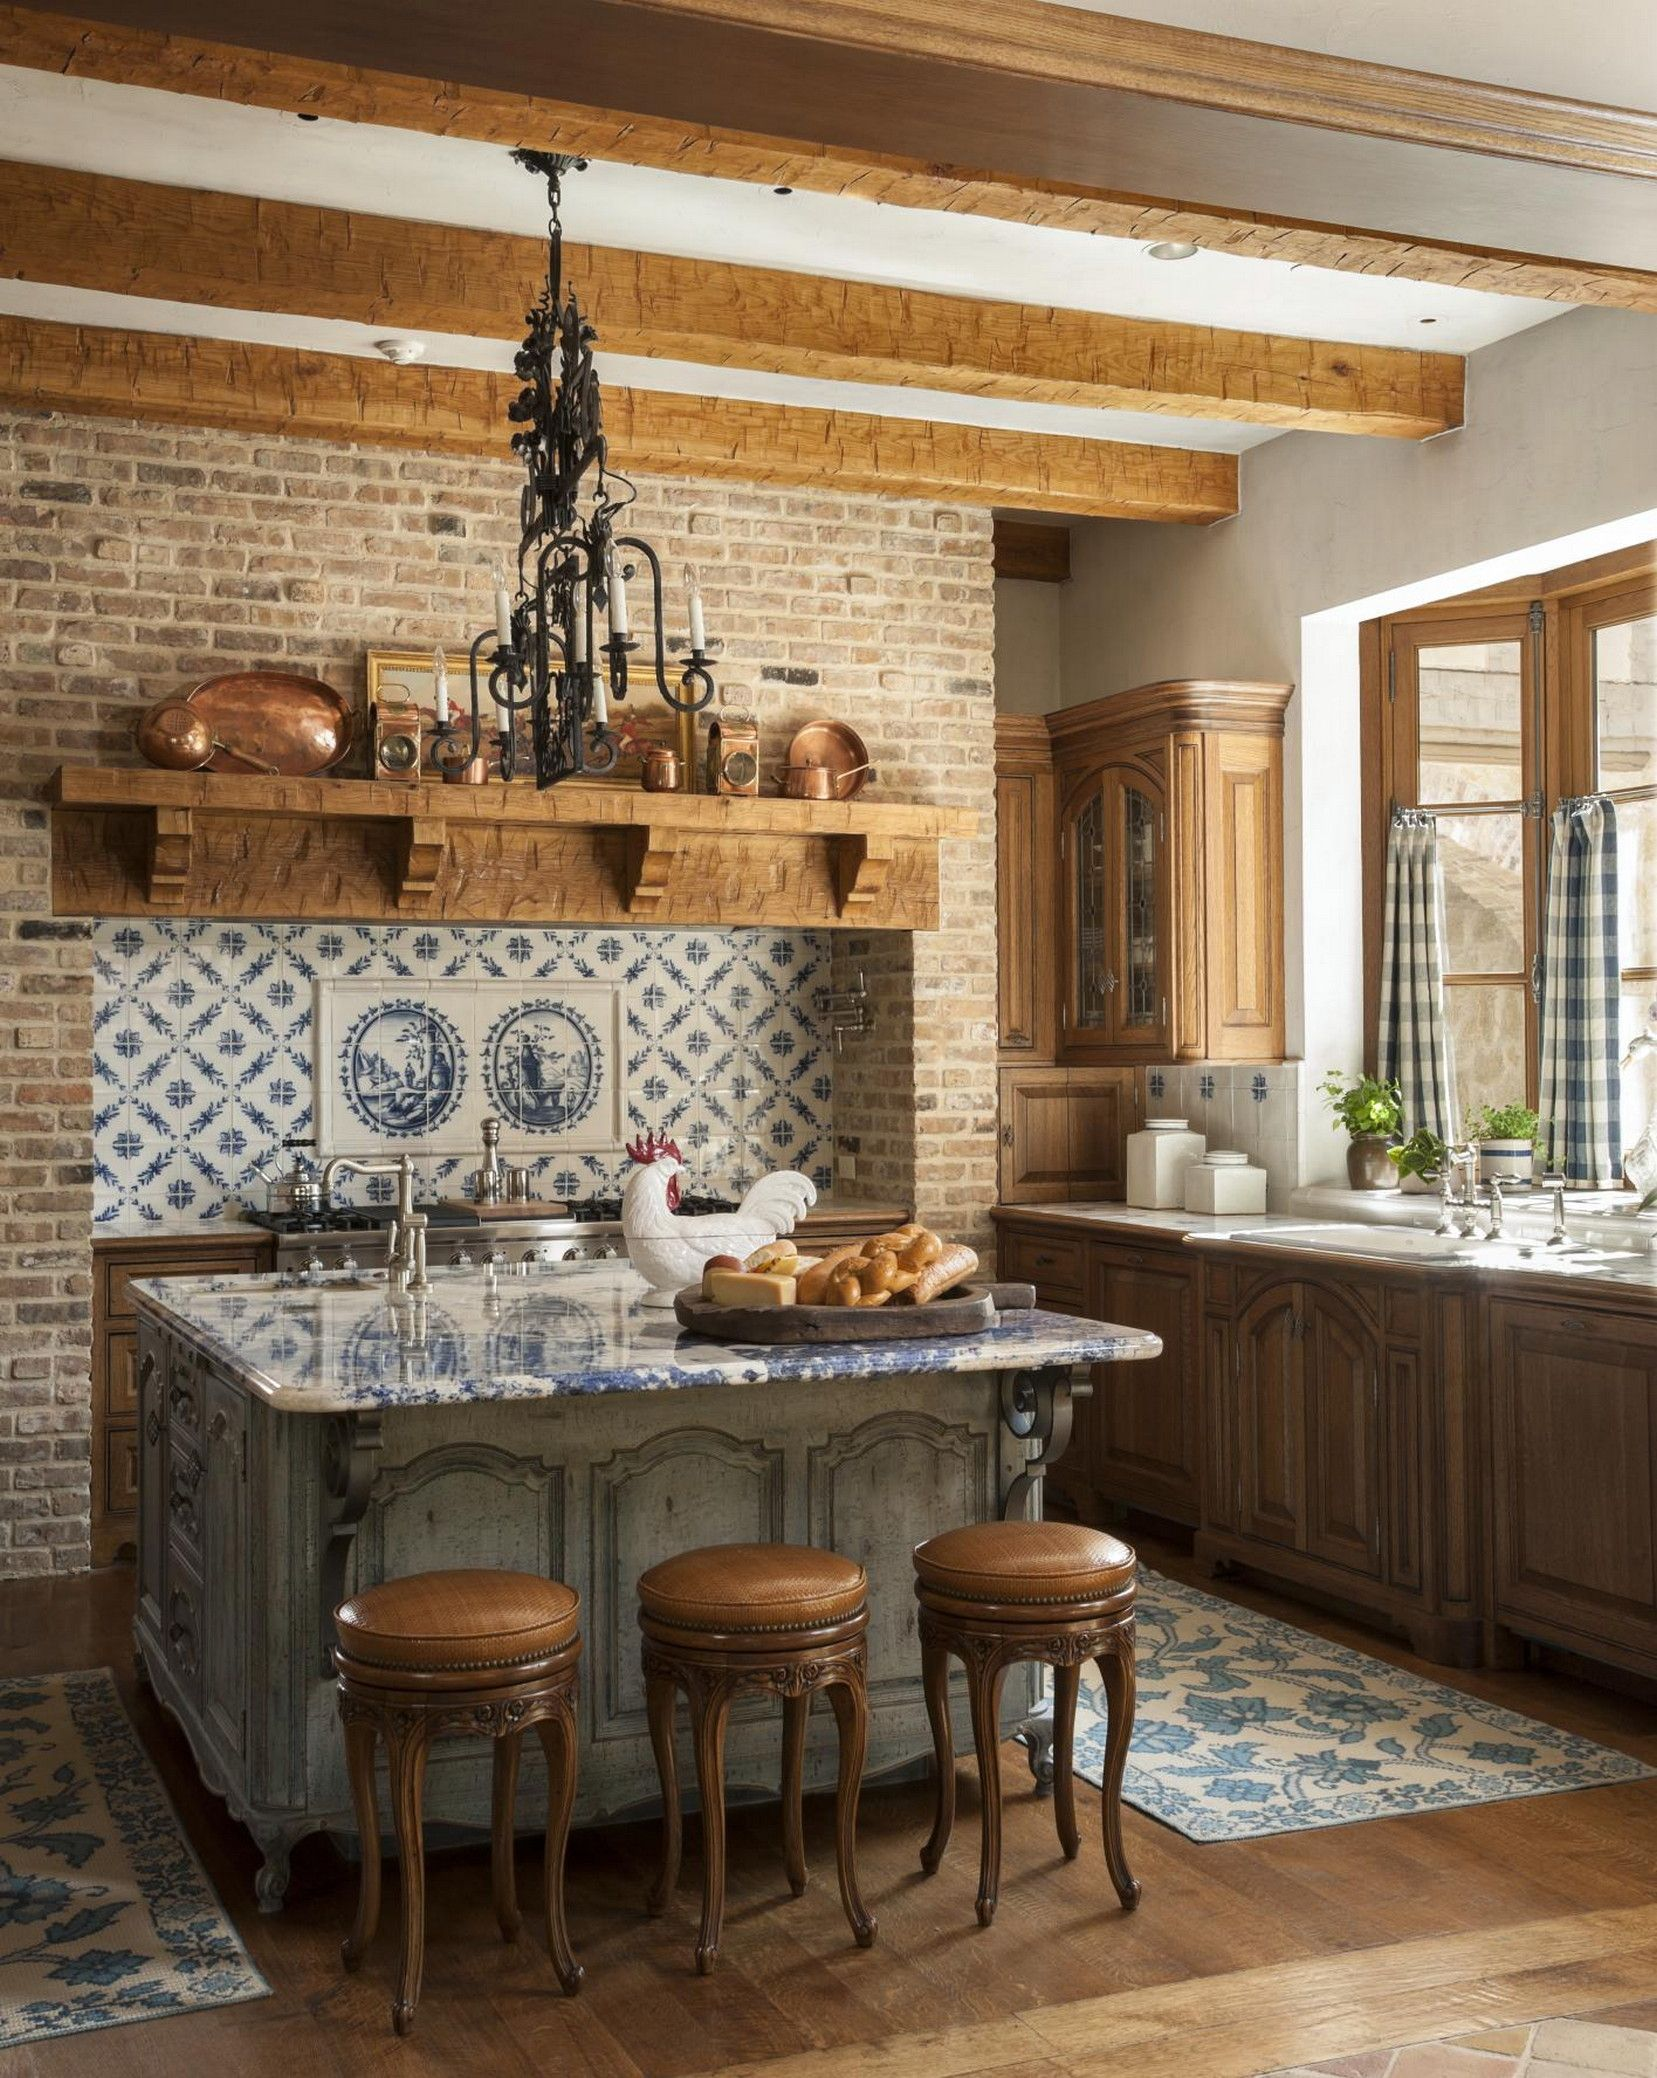 45 Best French Country Kitchens Design Ideas Remodel On A Budget #countrykitchens